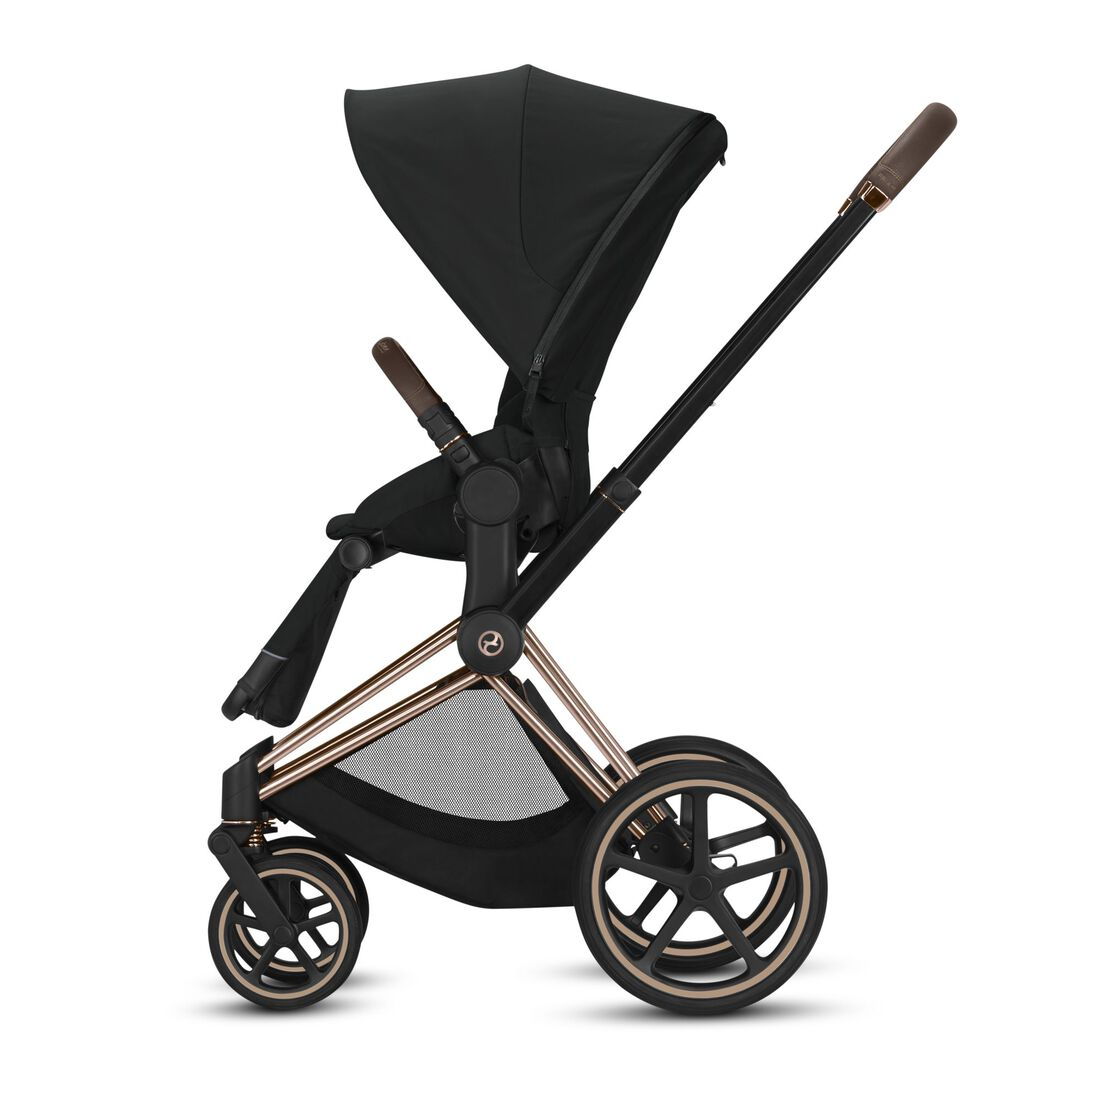 CYBEX Beezy Buggy - 2-in-1 Travel System with car seat